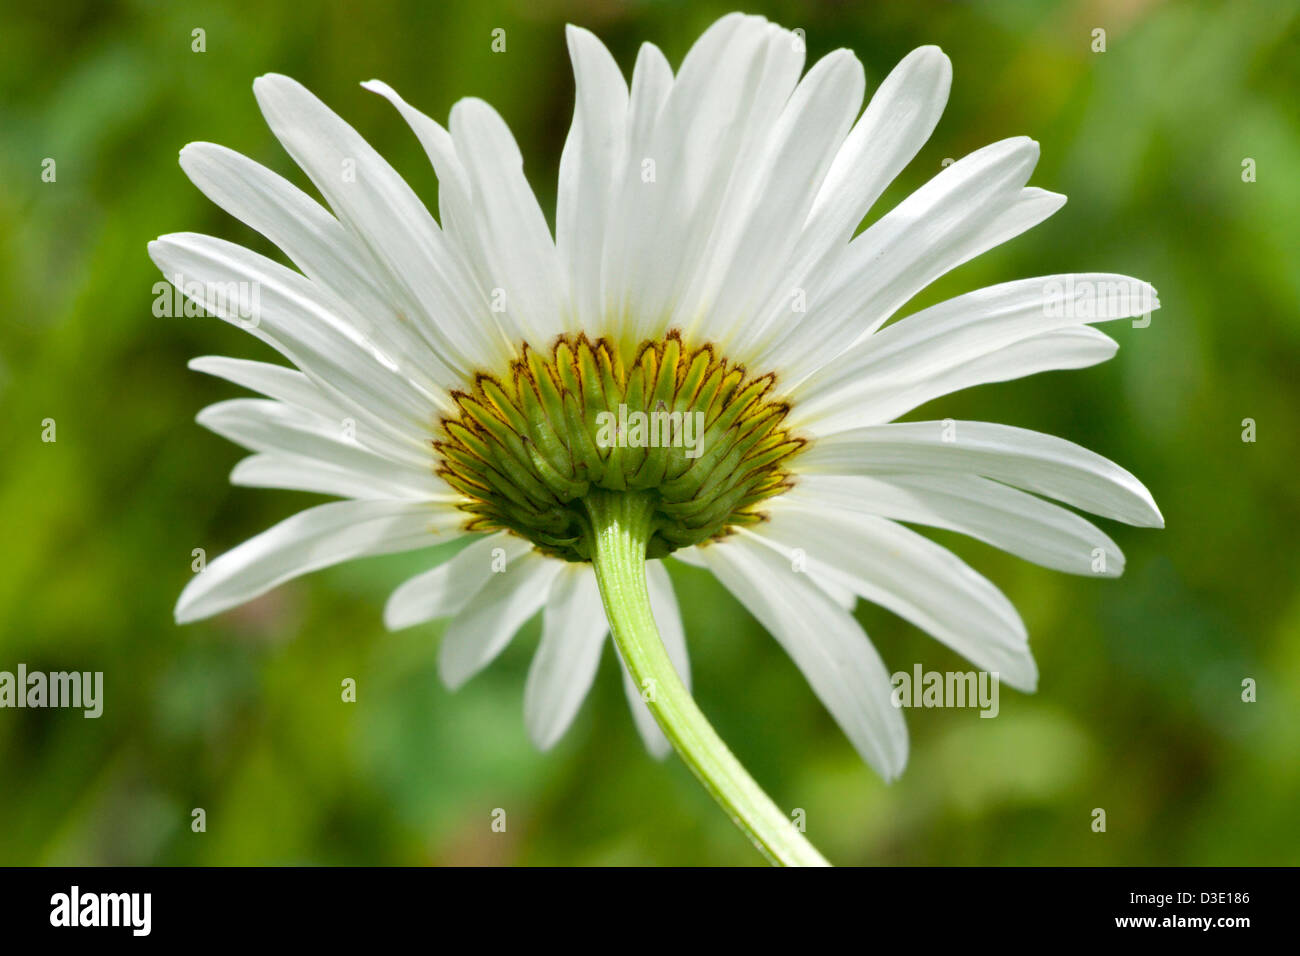 wild daisy flower petals white - Stock Image